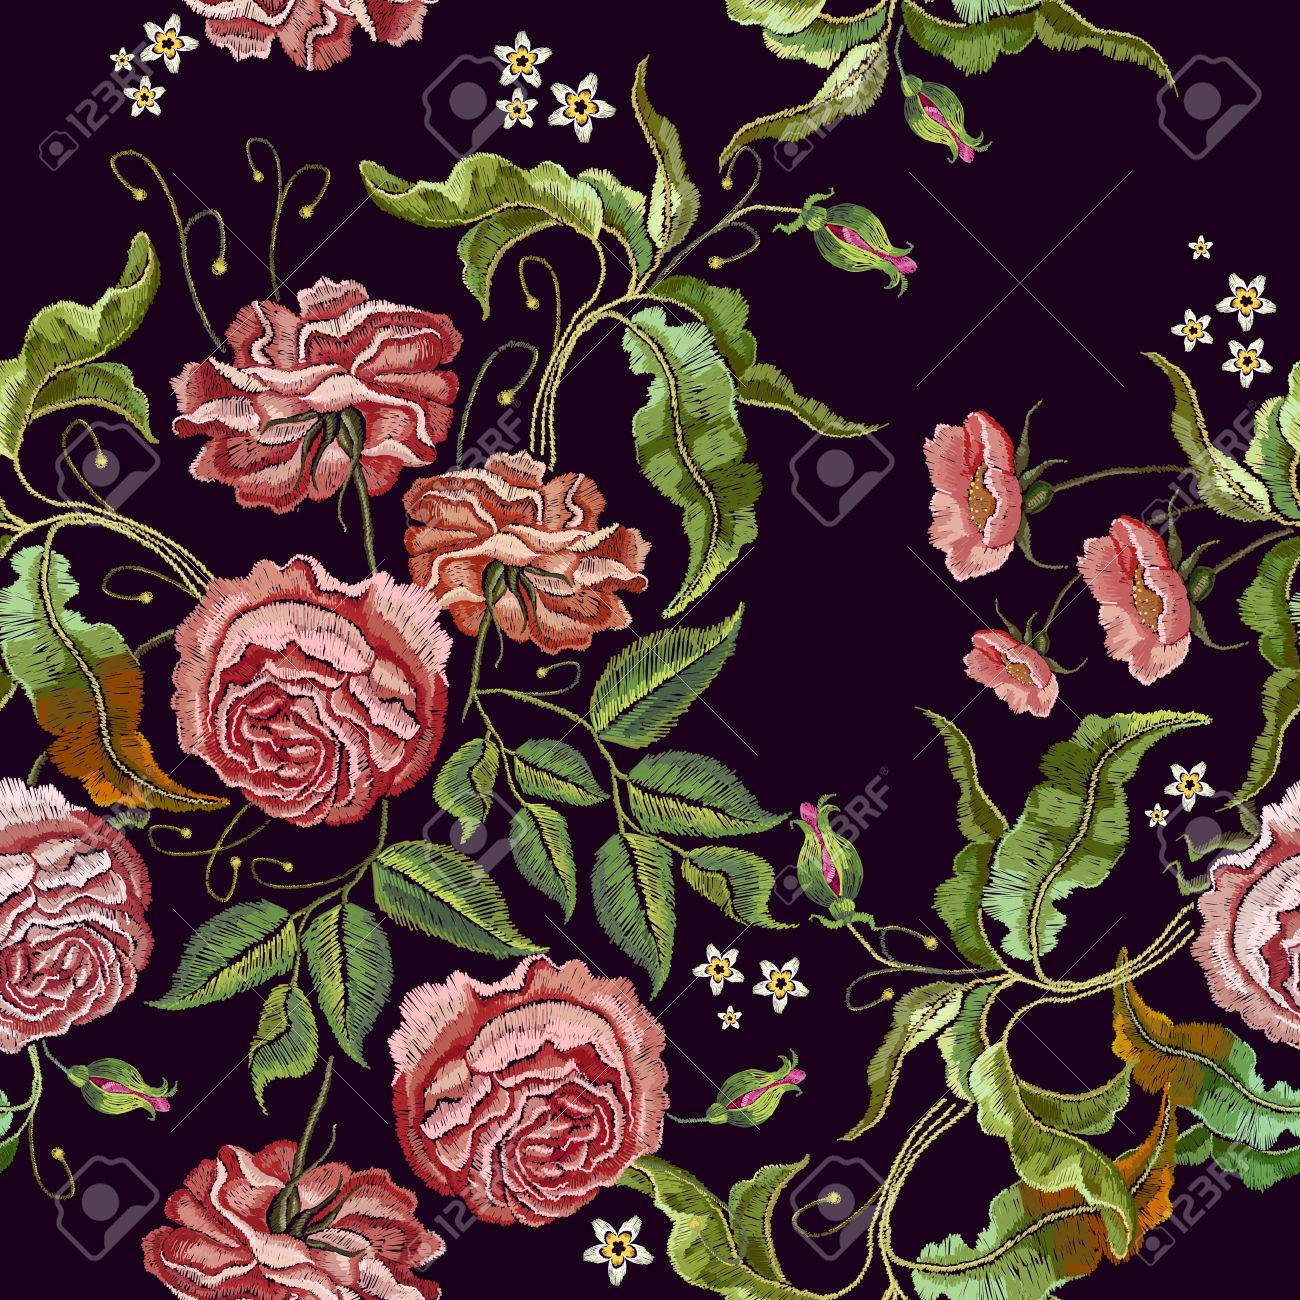 Roses Embroidery Seamless Pattern. Fashionable Template For Design on garden dress forms, country garden designs, garden edging designs, garden home designs, garden wedding designs, garden fabric, garden box designs, garden art designs, garden cake designs, garden motif design, garden surface pattern designs, garden window designs, garden flowers designs, garden needlepoint designs,